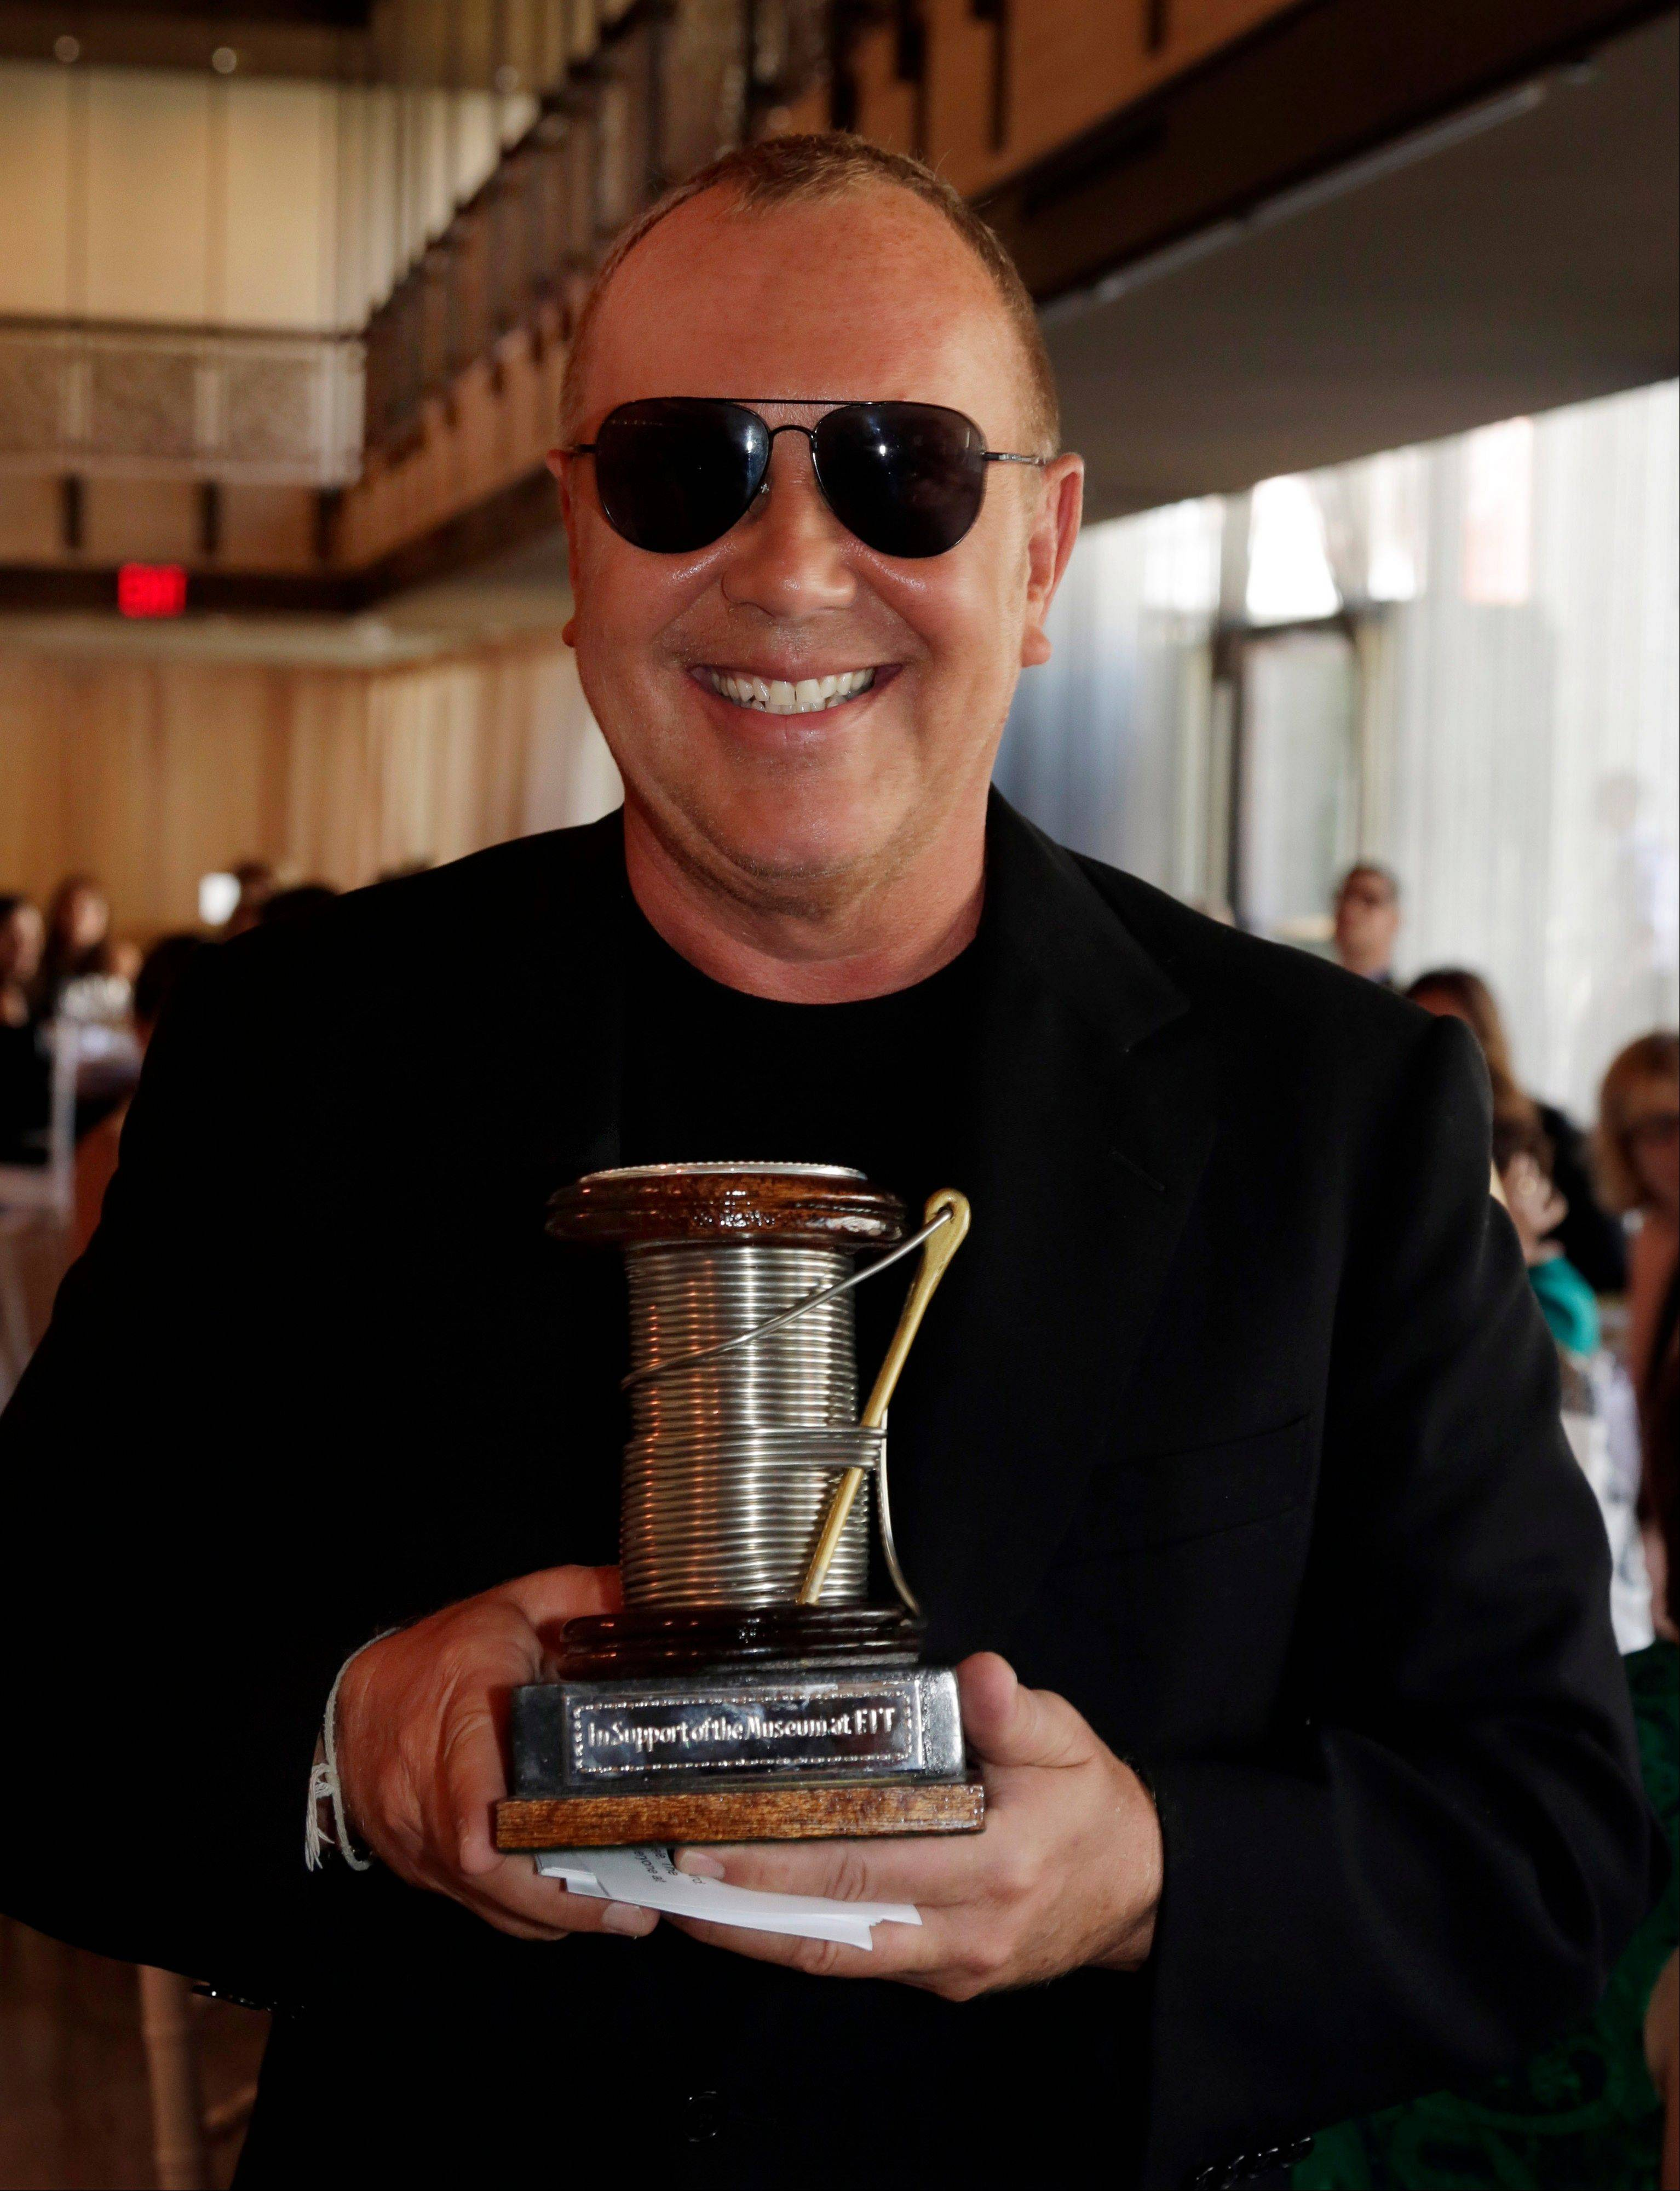 Designer Michael Kors holds the 2013 Couture Council Award for Artistry of Fashion presented by actress Hilary Swank during a luncheon in the David H. Koch Theater of New York's Lincoln Center.